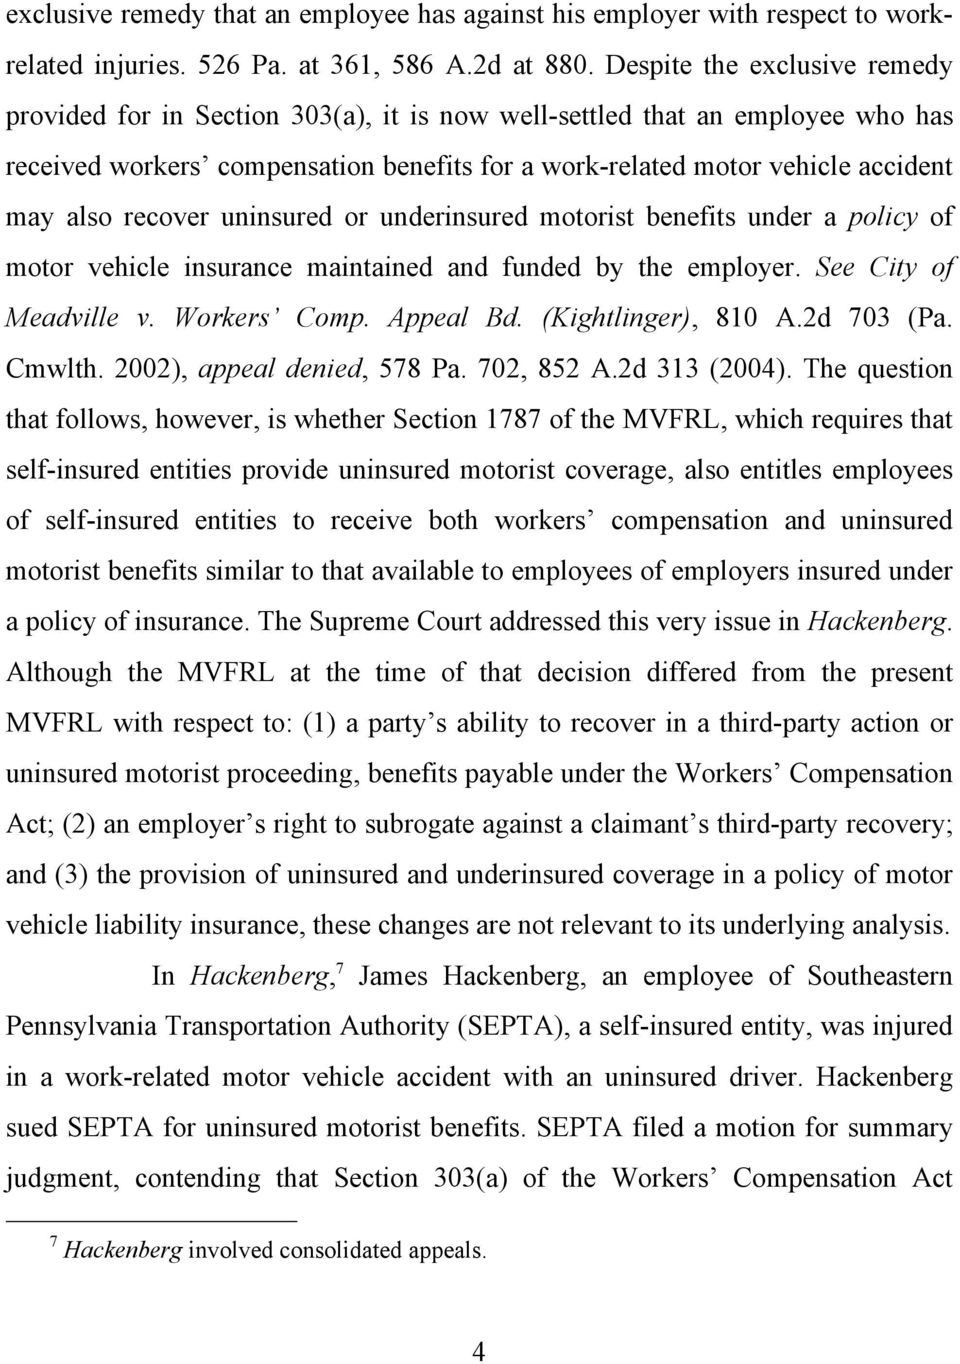 recover uninsured or underinsured motorist benefits under a policy of motor vehicle insurance maintained and funded by the employer. See City of Meadville v. Workers Comp. Appeal Bd.